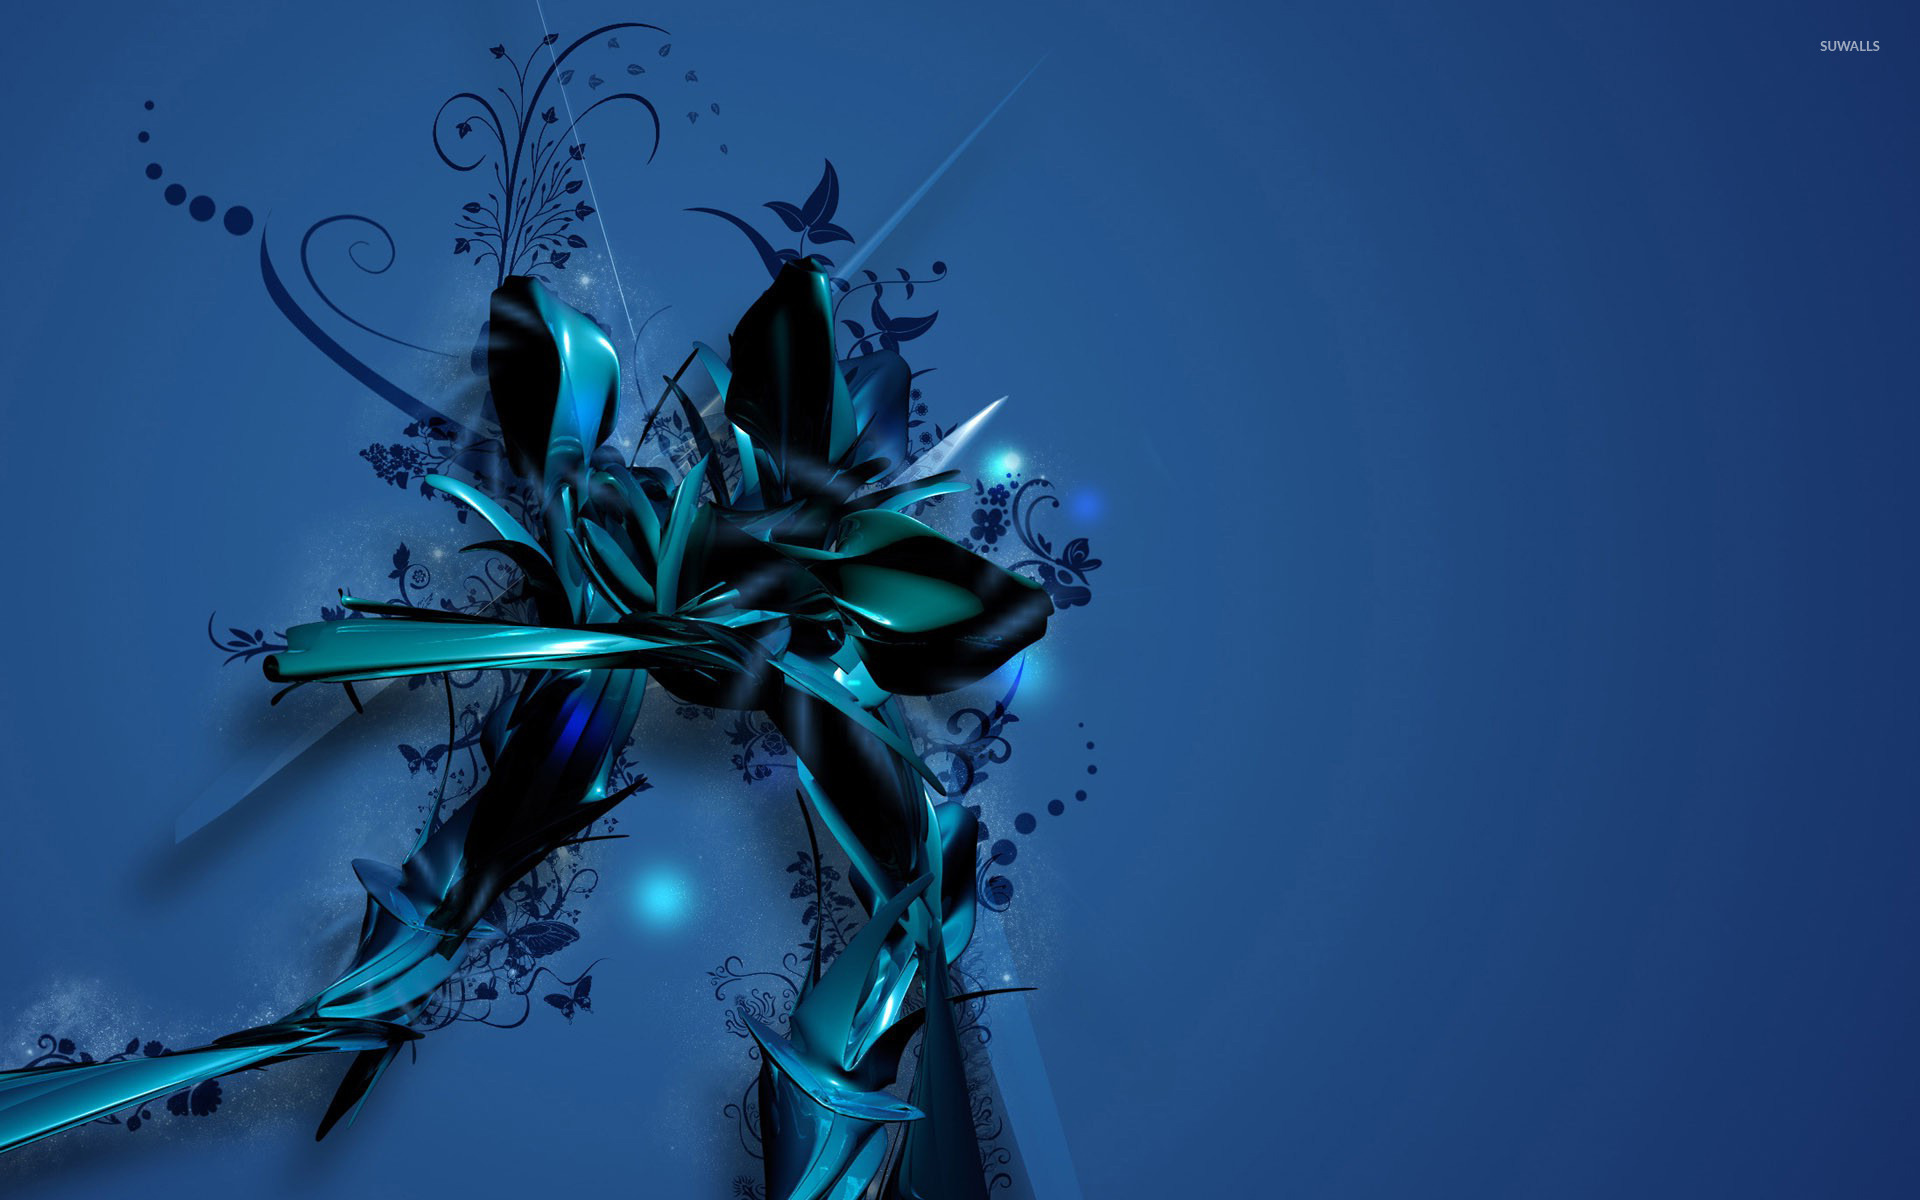 Blue flower wallpaper abstract wallpapers 16944 blue flower wallpaper izmirmasajfo